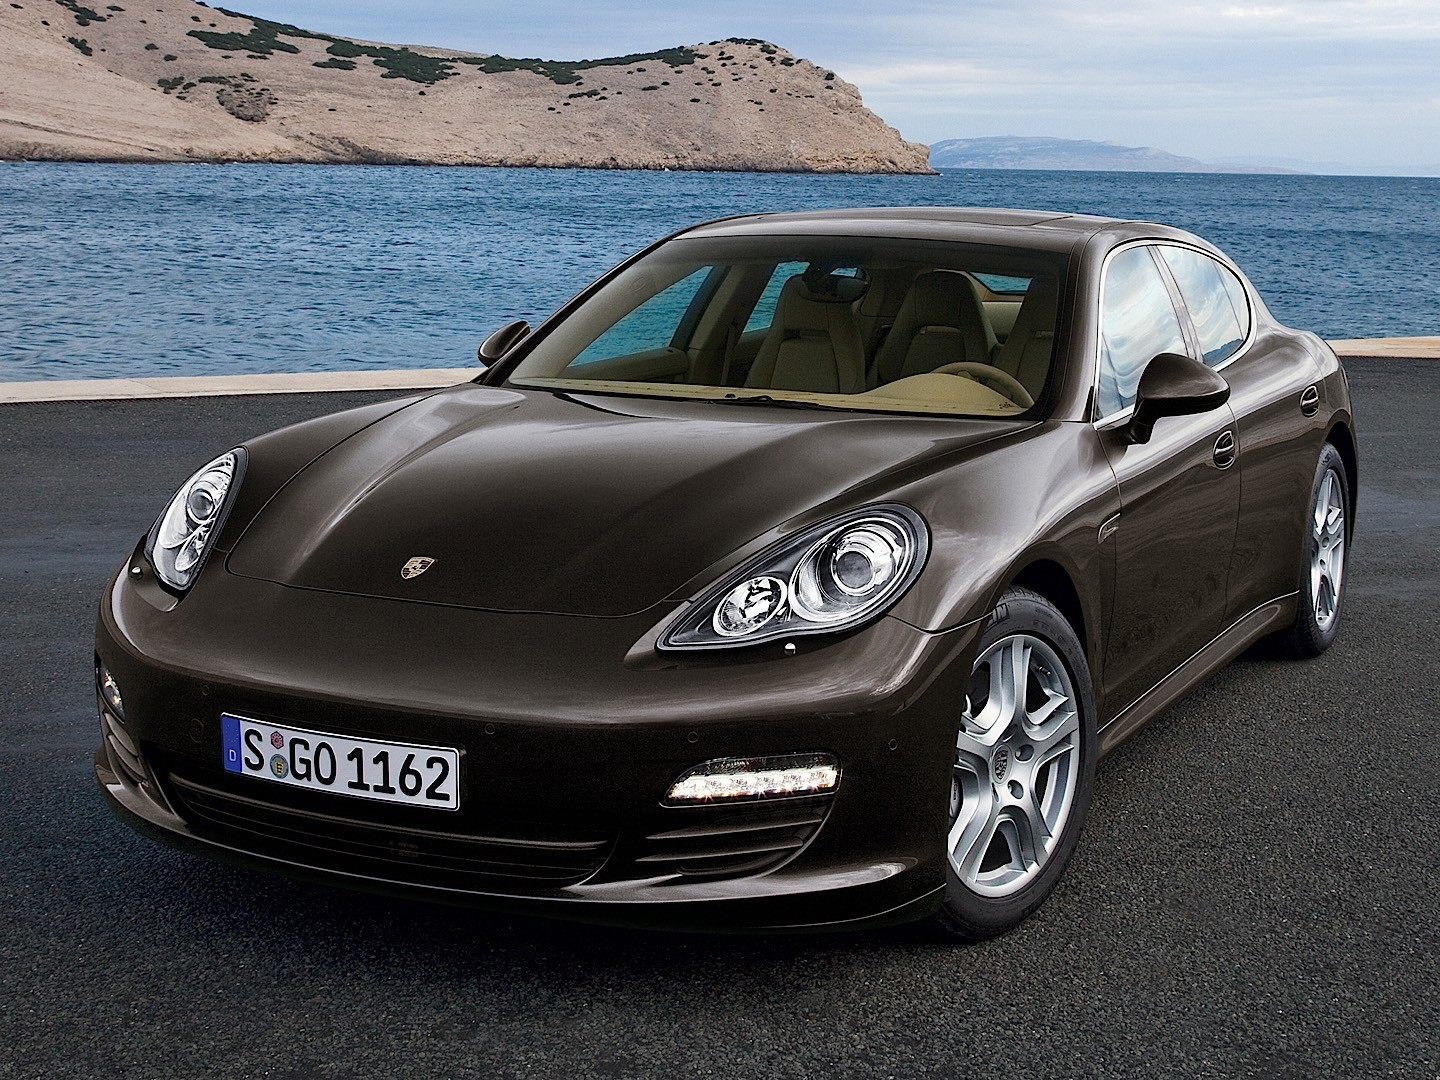 porsche panamera s 970 specs 2009 2010 2011 2012 2013 autoevolution. Black Bedroom Furniture Sets. Home Design Ideas